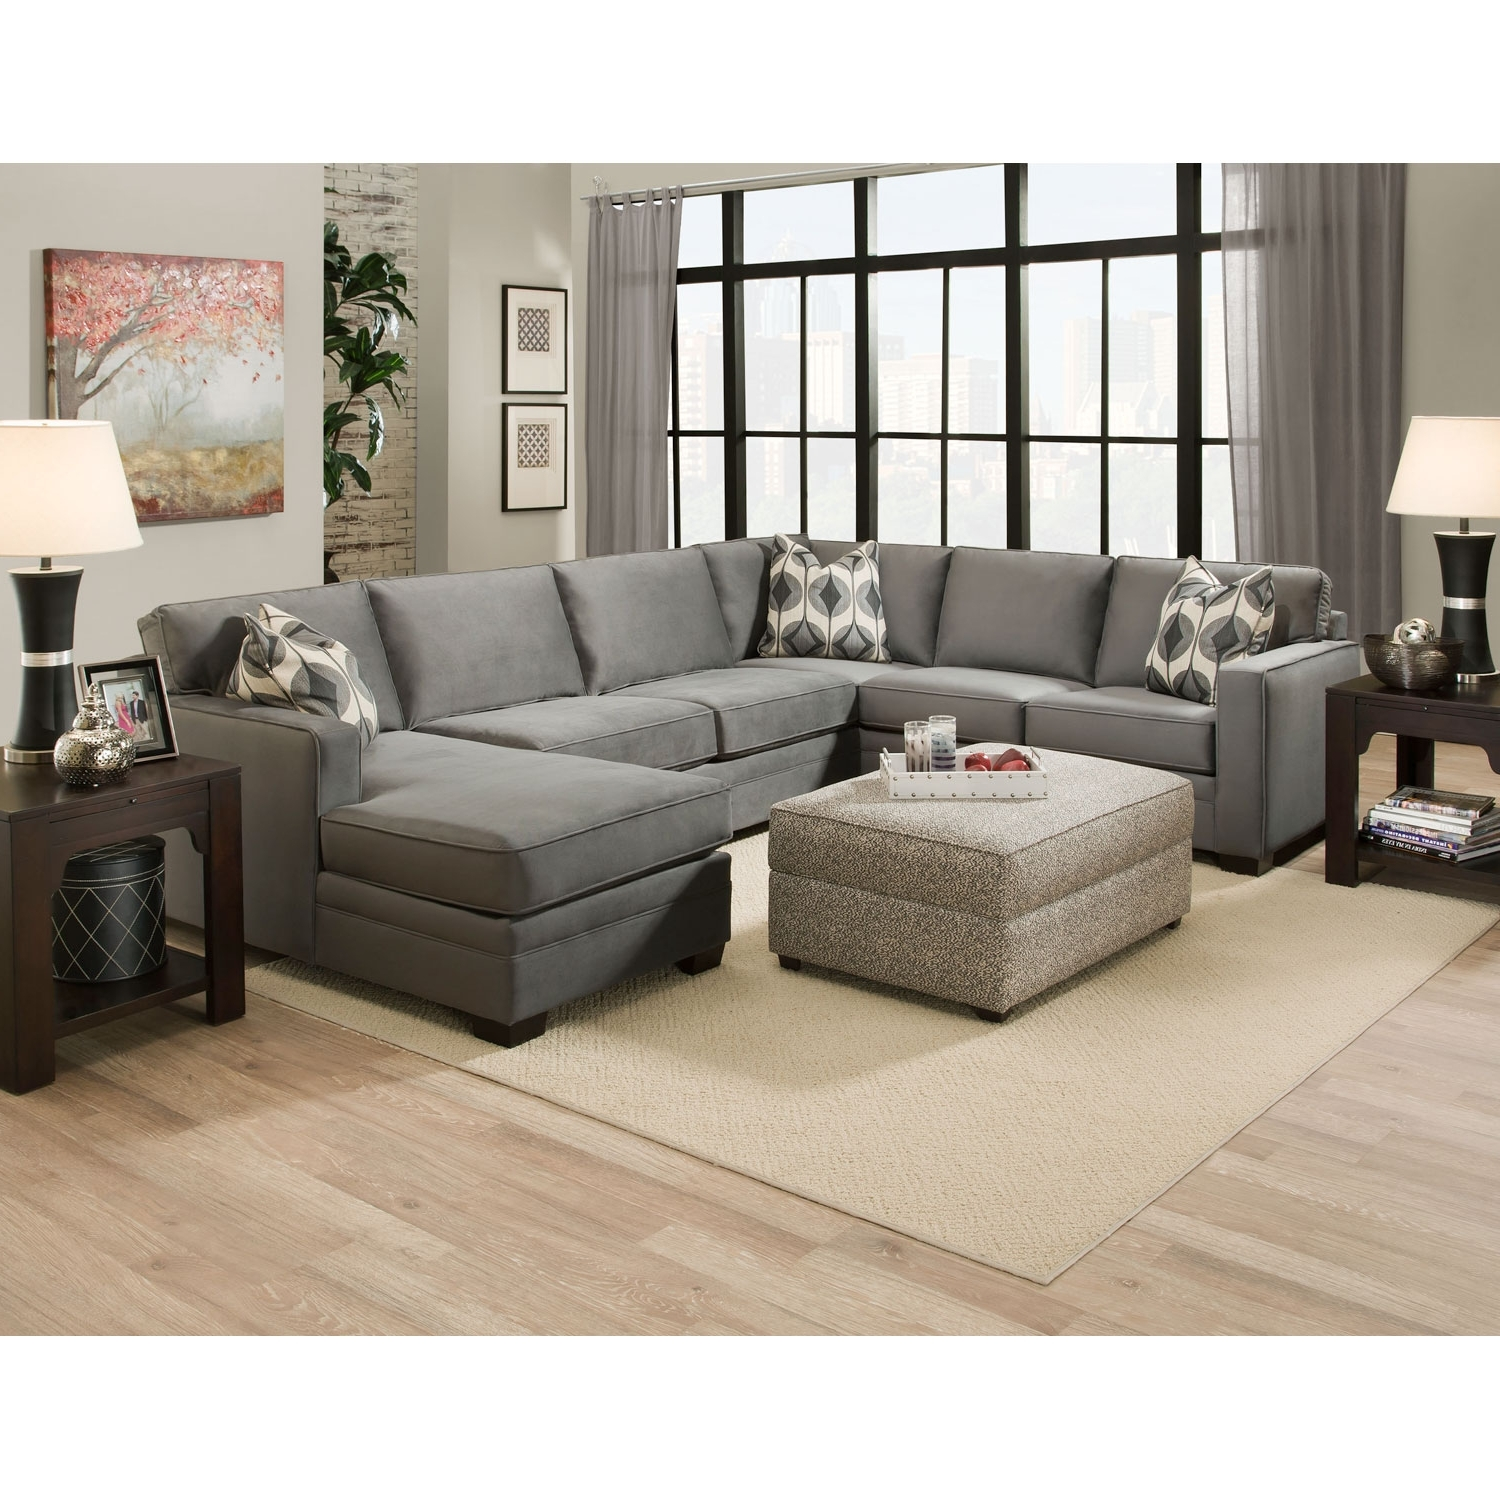 Gray Extra Large U Shaped Sectional Sofa With Chaise And Accent Intended For 2019 Extra Large U Shaped Sectionals (View 8 of 20)